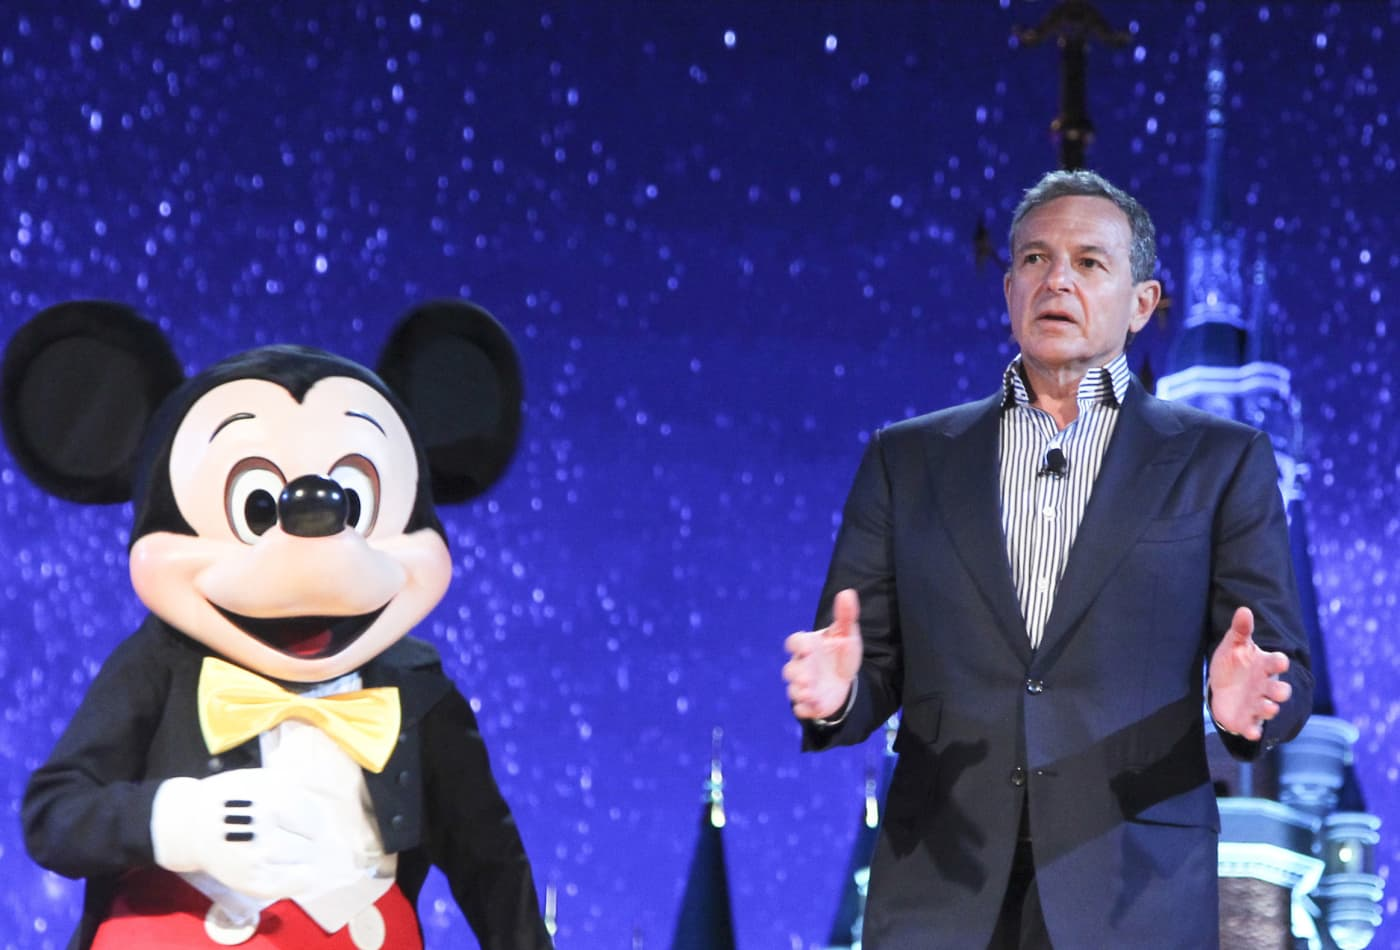 bf1ad2322b997a 6 lessons from Disney CEO Bob Iger on creating corporate magic